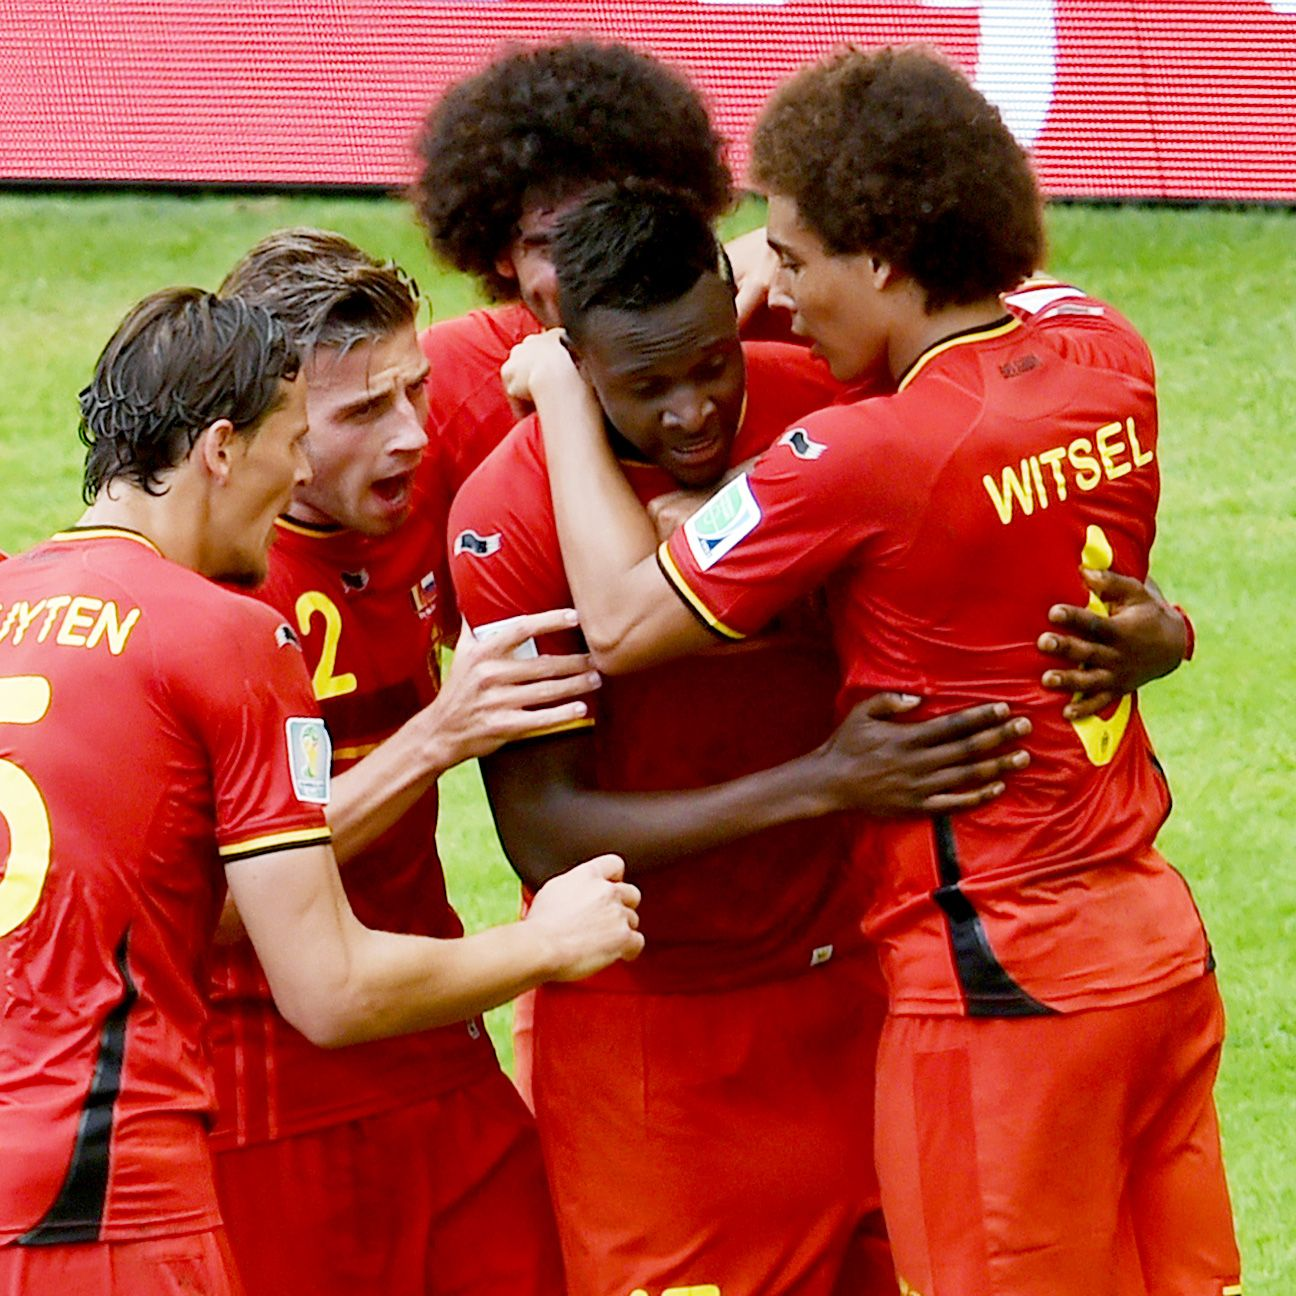 Belgium's pre-tournament buzz has been significantly dampened by two uninspiring, narrow Group H wins.